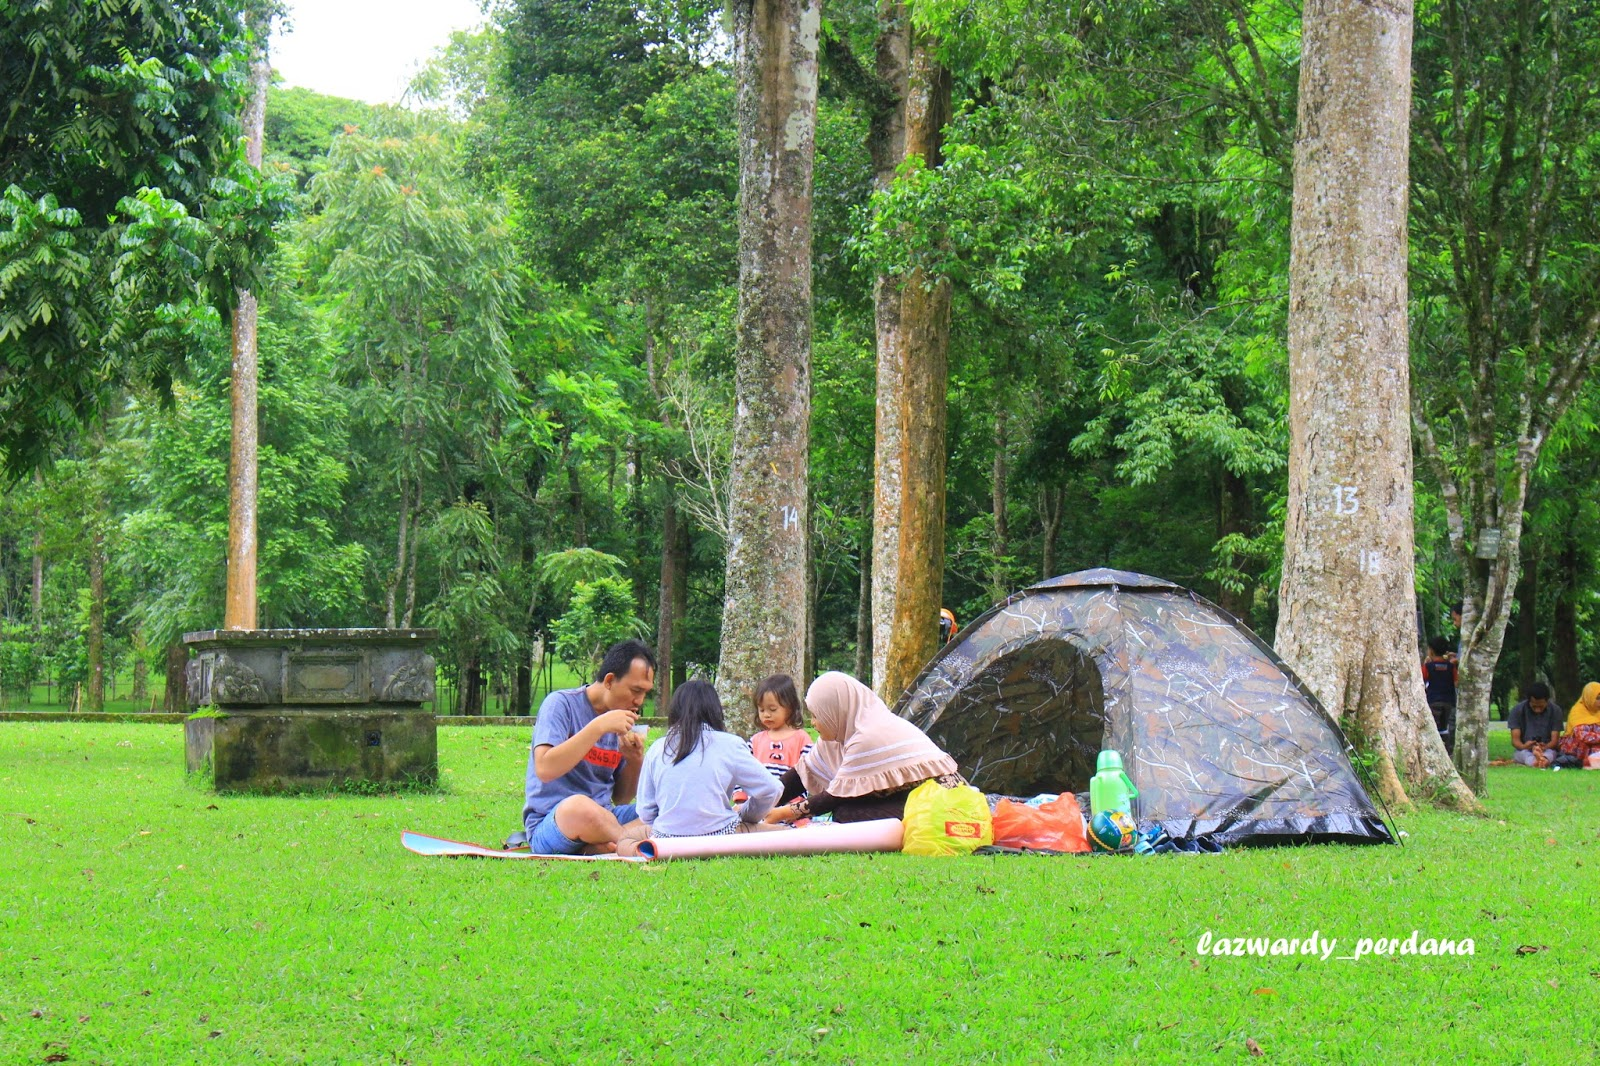 bedugul botanical garden is a place where you can pitch tents